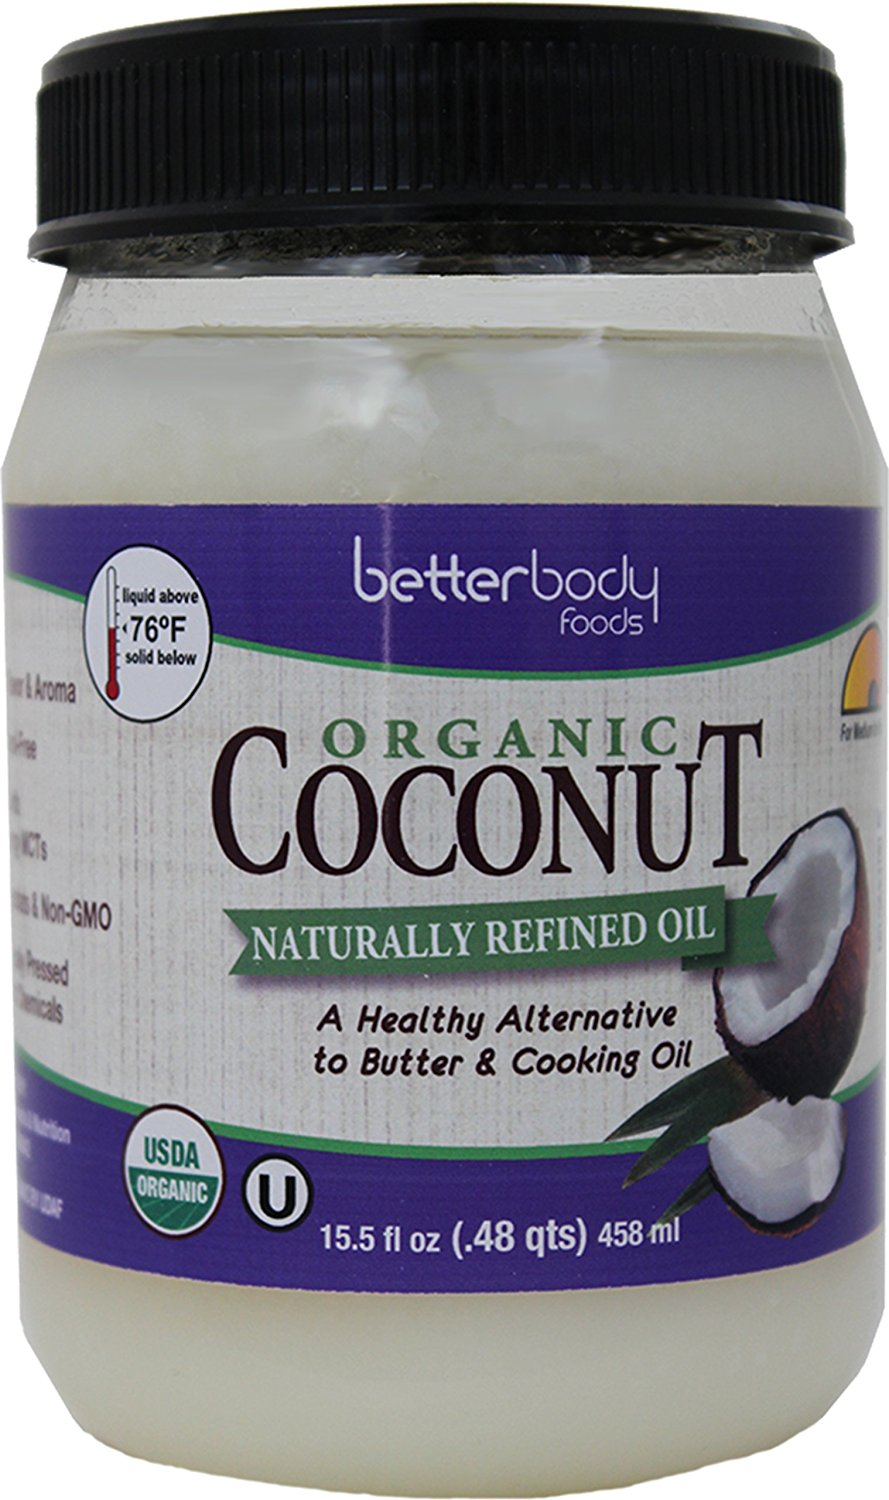 Betterbody Foods Coconut Oil Naturally Refined